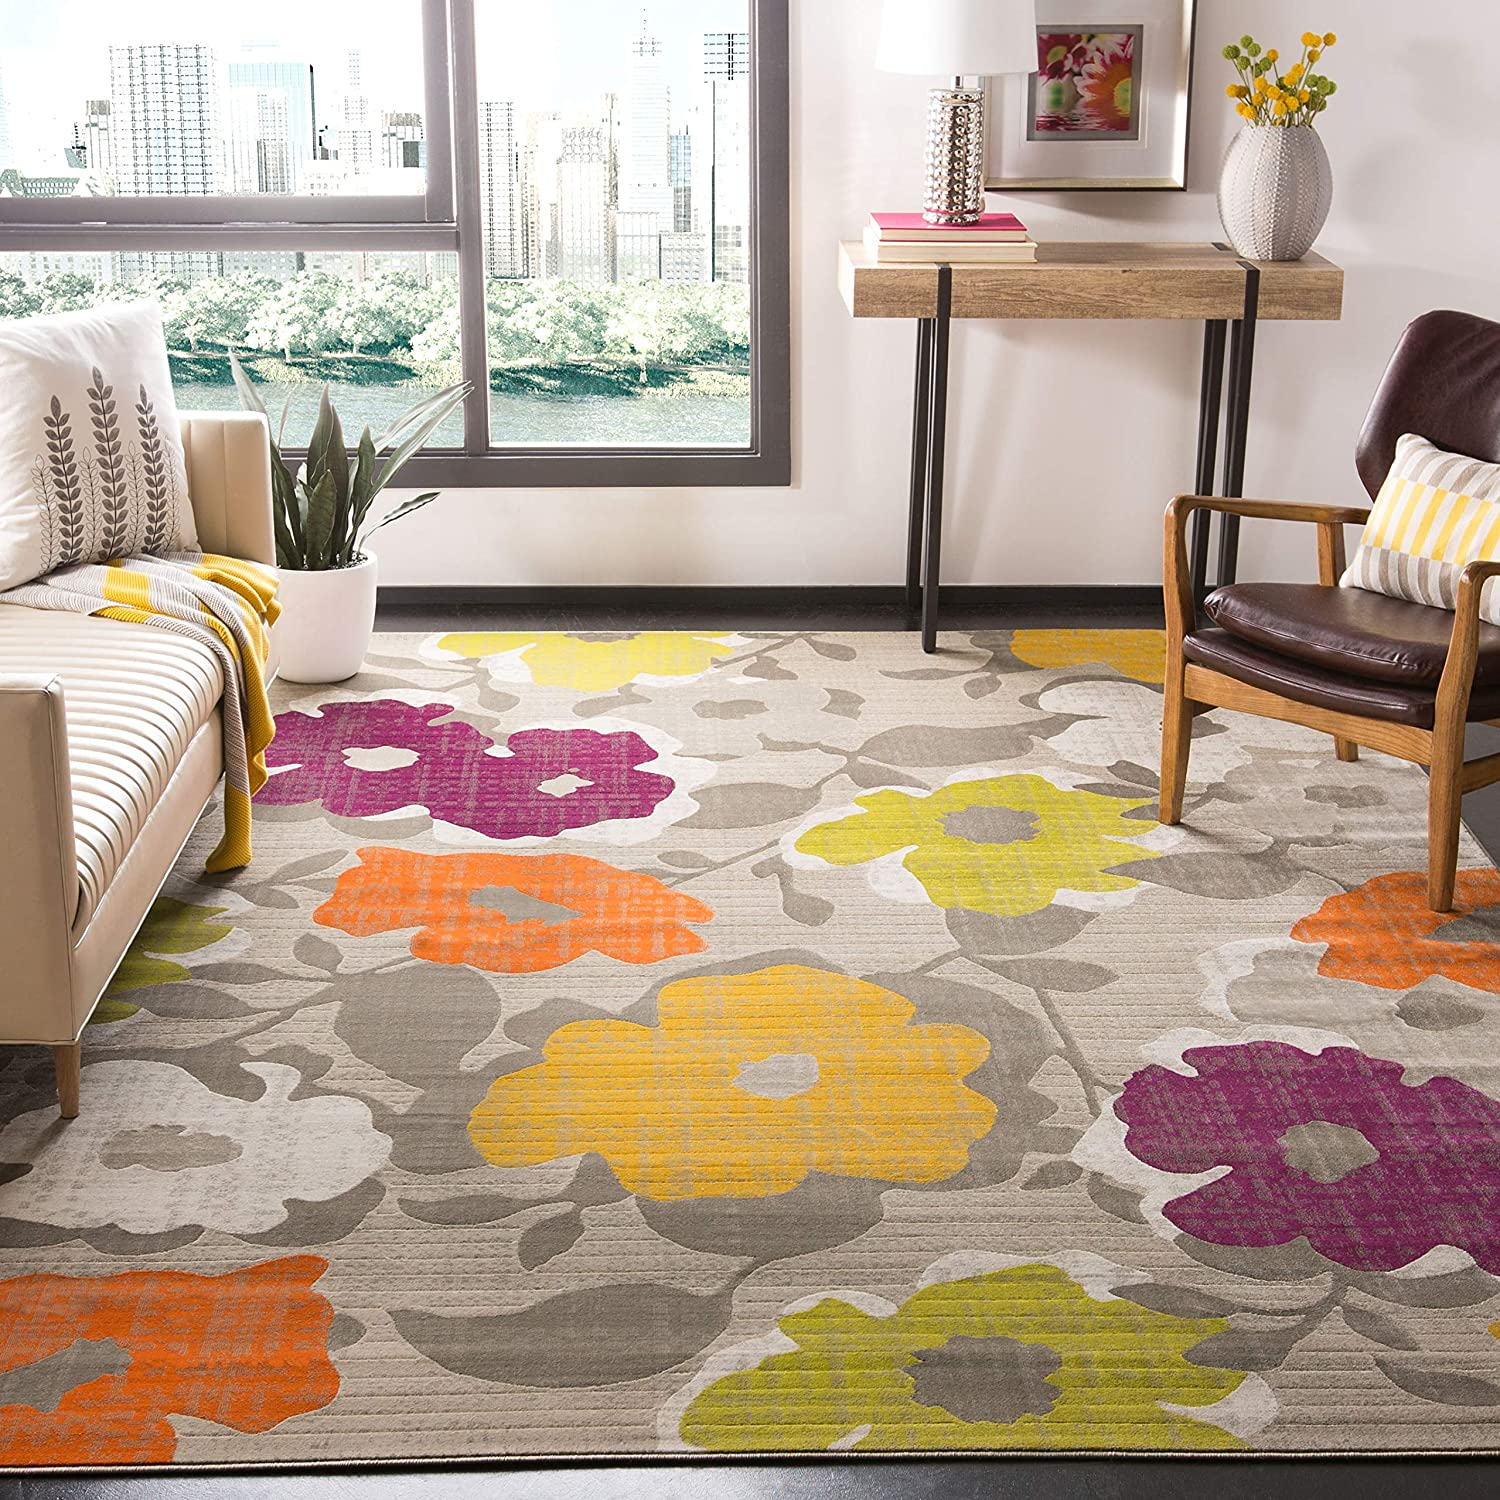 Amazon Com Safavieh Porcello Collection Prl7726c Floral Non Shedding Stain Resistant Living Room Bedroom Area Rug 6 X 9 Grey Yellow Furniture Decor